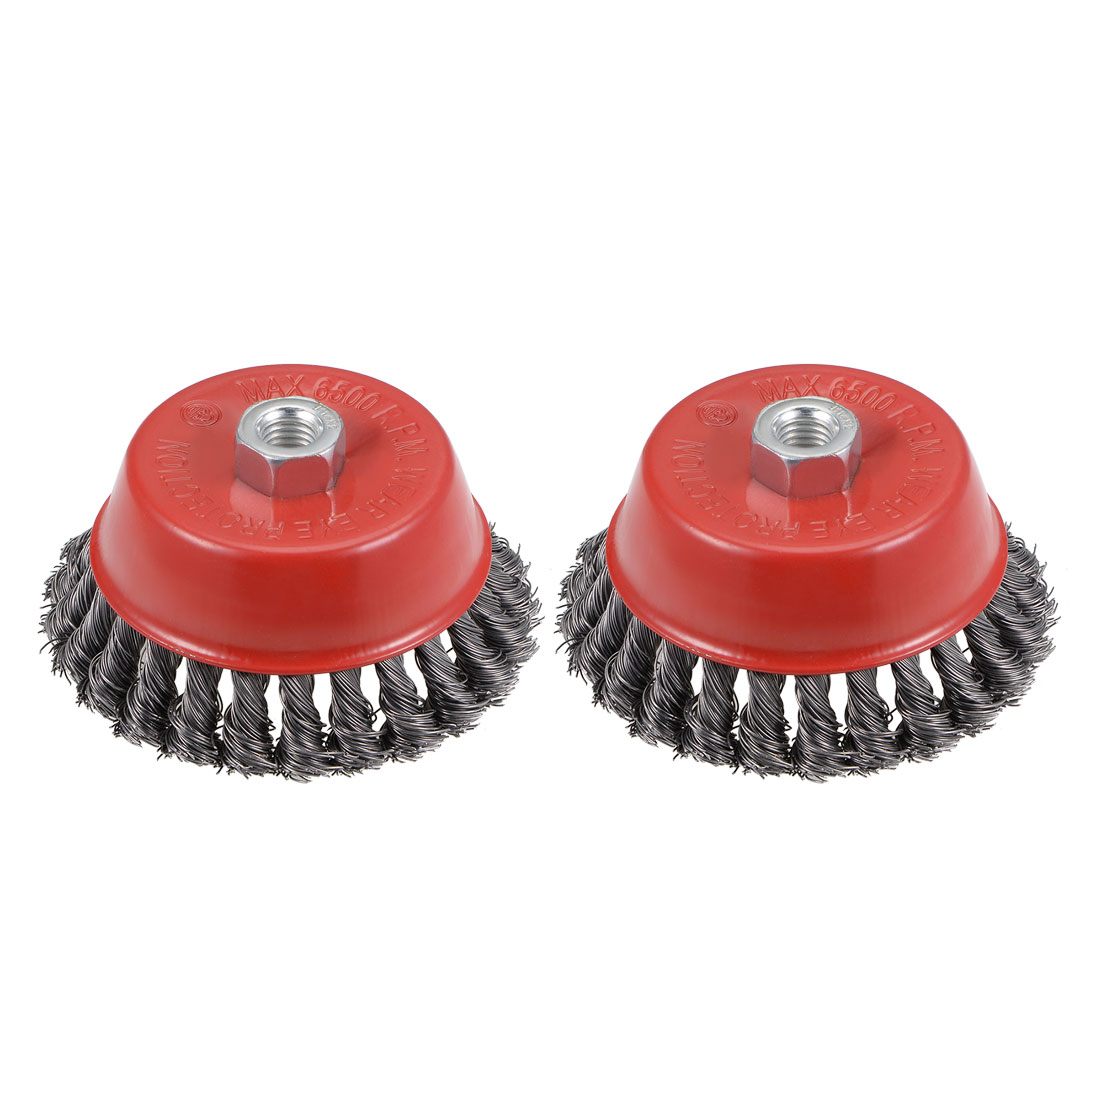 5-Inch Wire Cup Brush Twist Knotted Crimped Steel with M14 Threaded Hole 2 Pcs